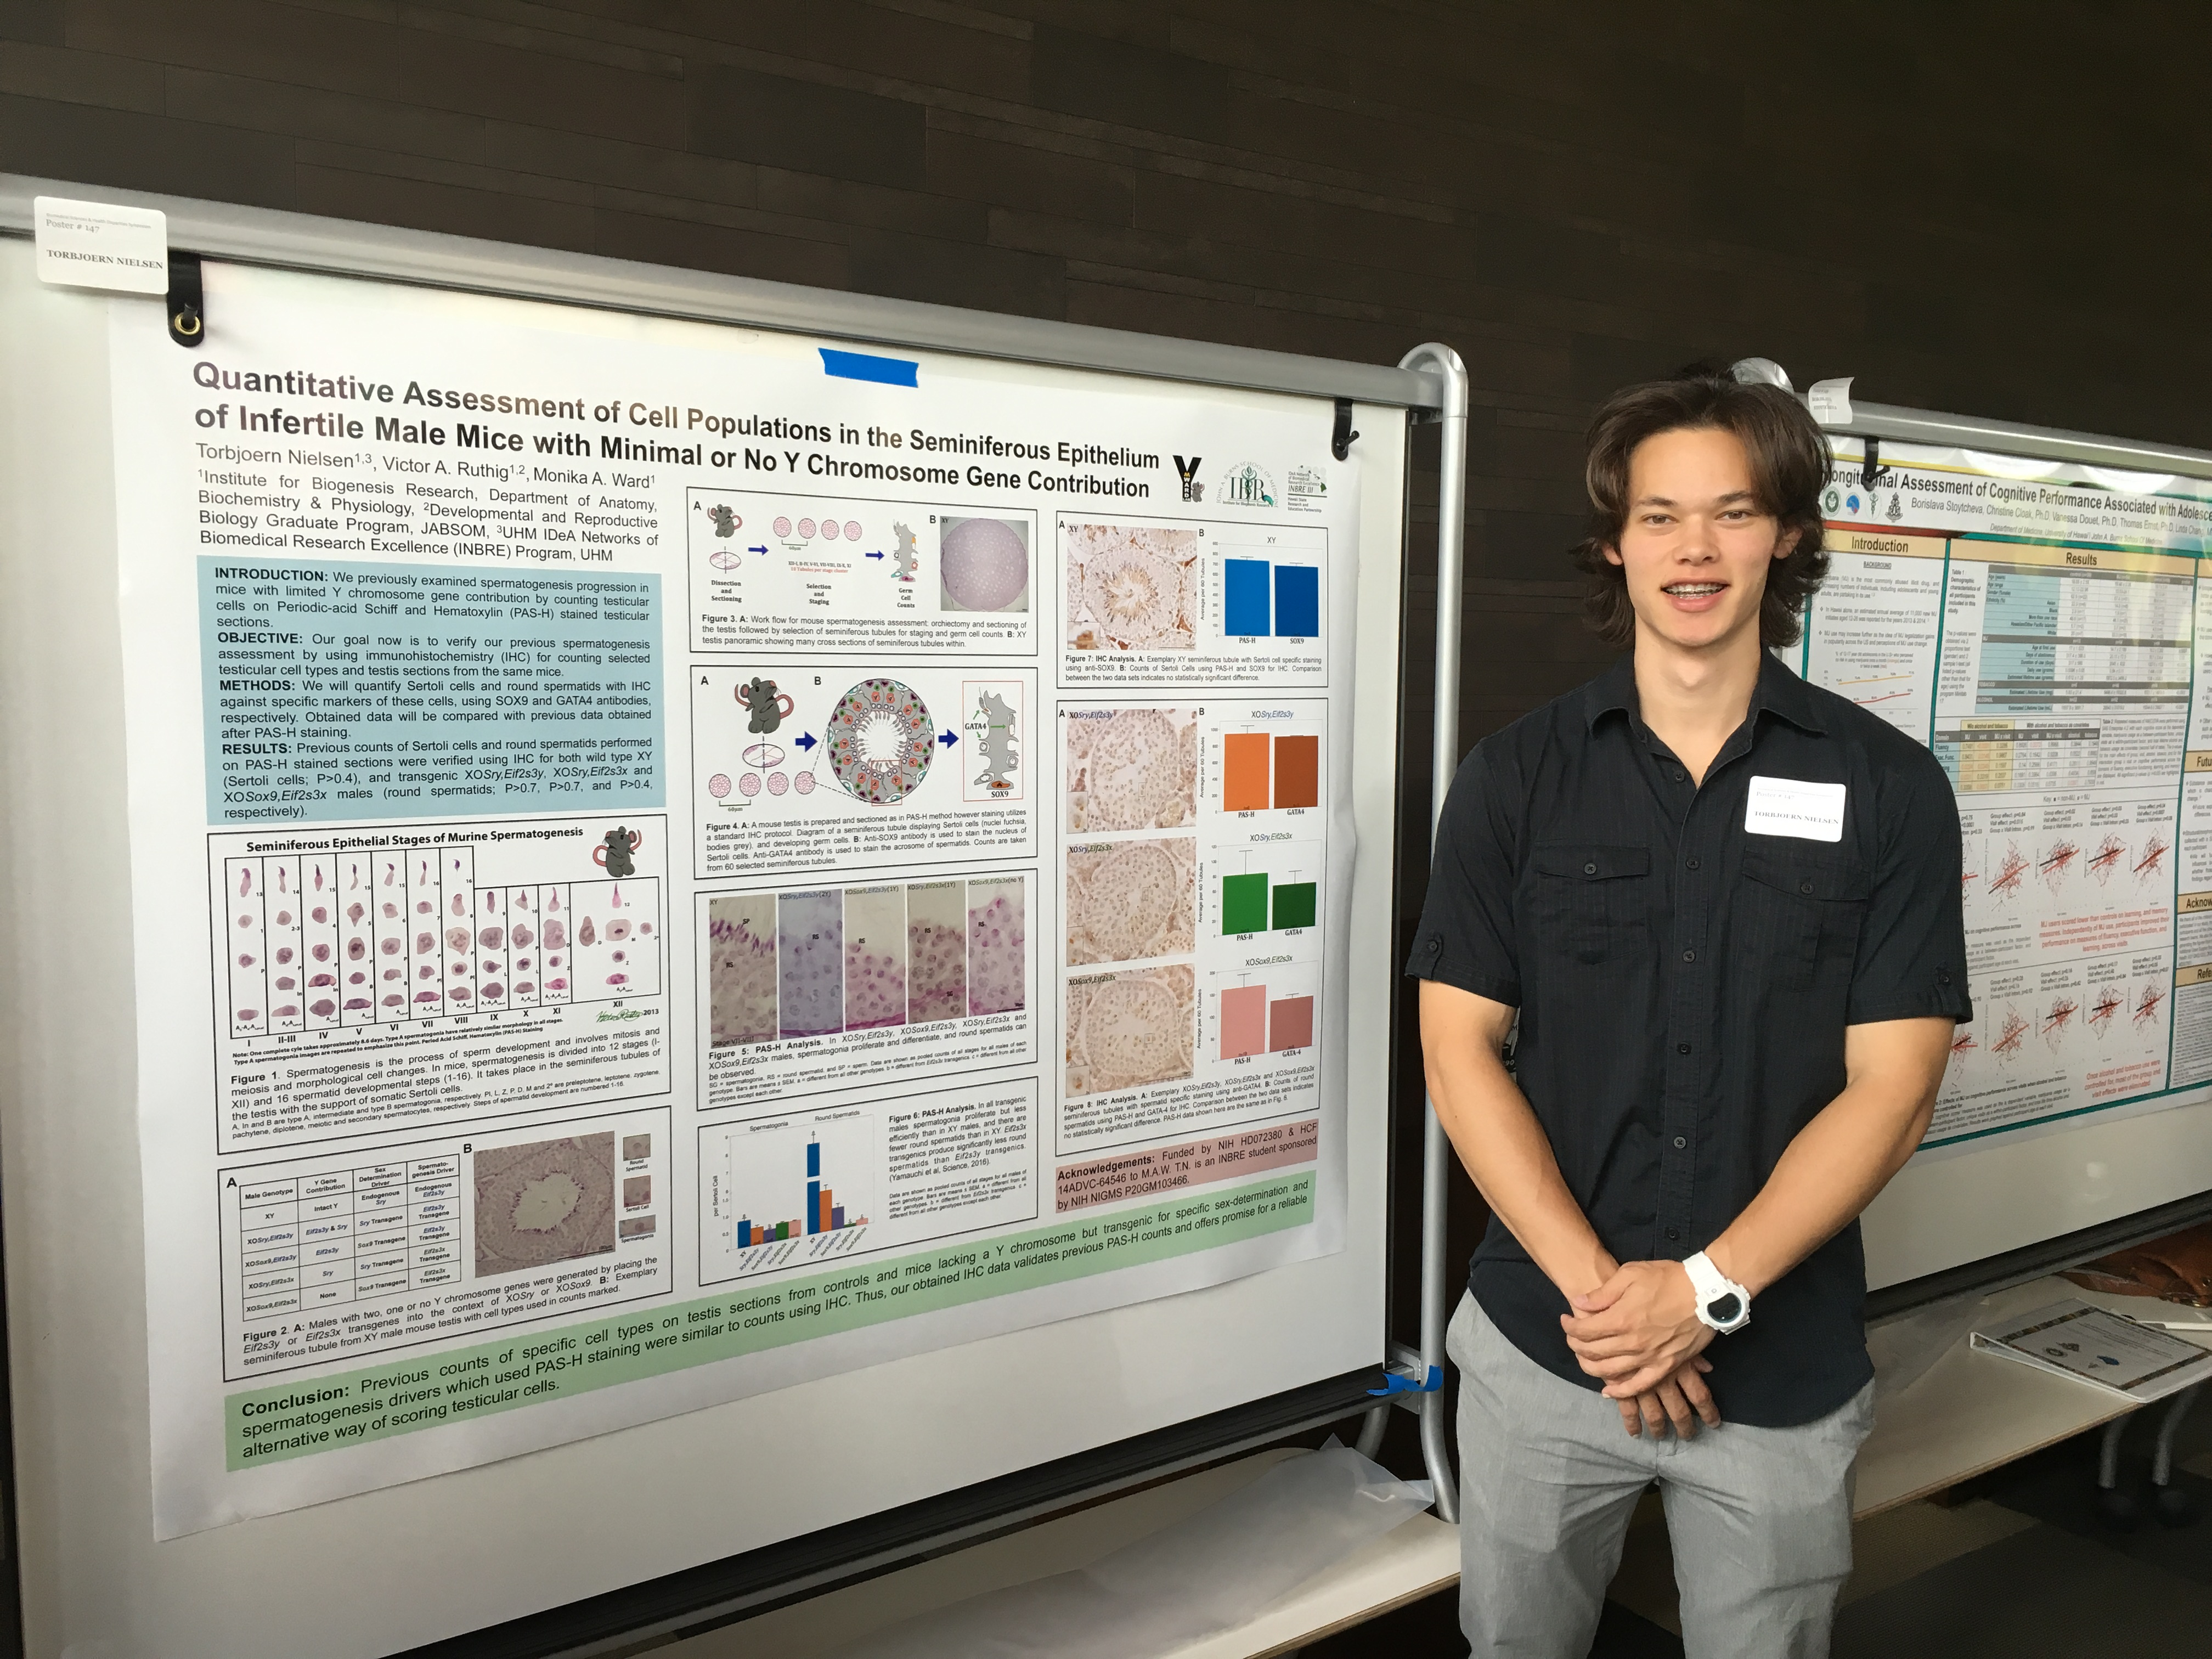 Torbjoern Nielsen presenting his poster at the 2016 Biomedical Symposium Undergraduate Poster Session